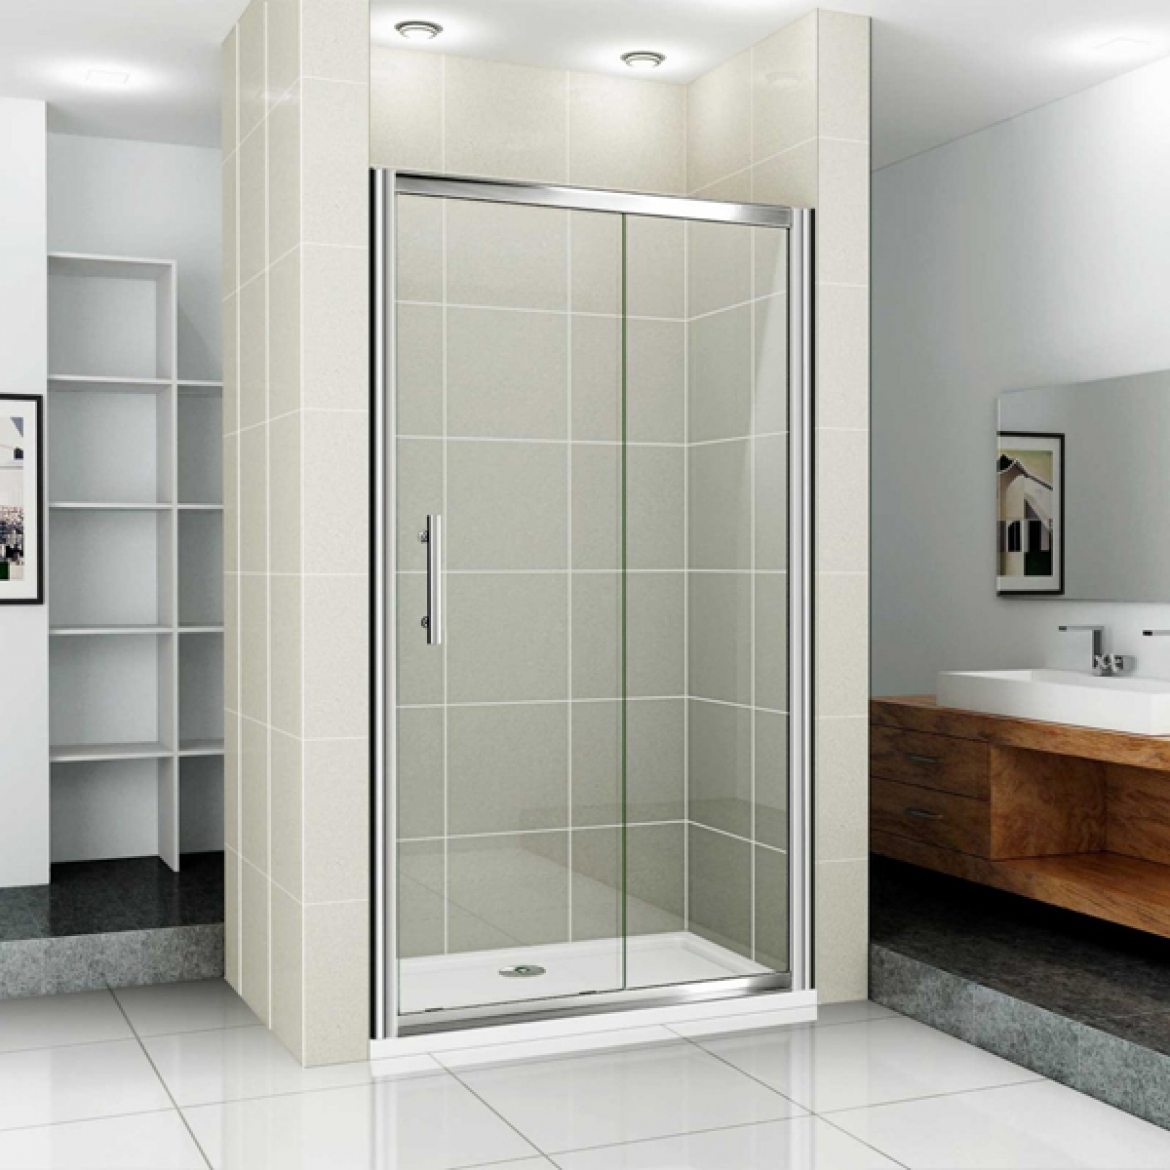 Wall to wall sliding shower screen [1150 mm]